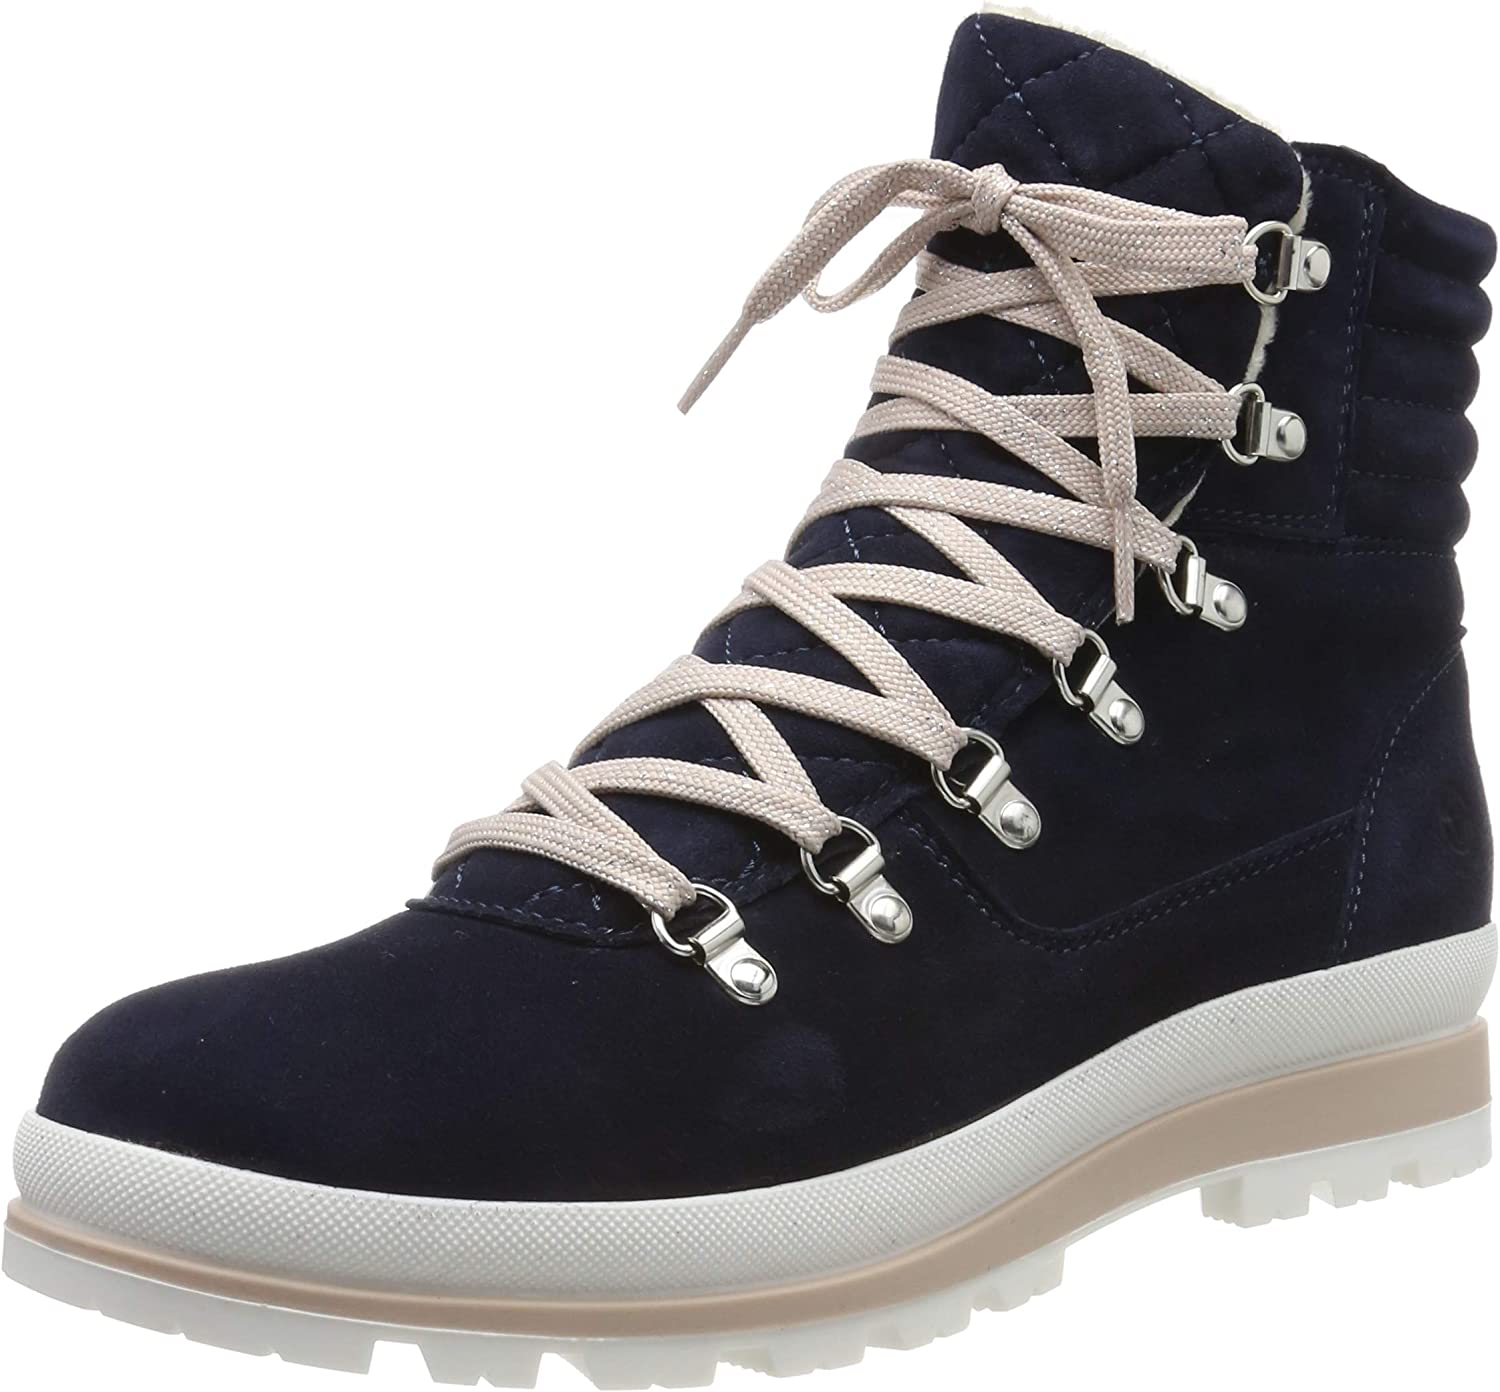 25804-33 865 ankle boots